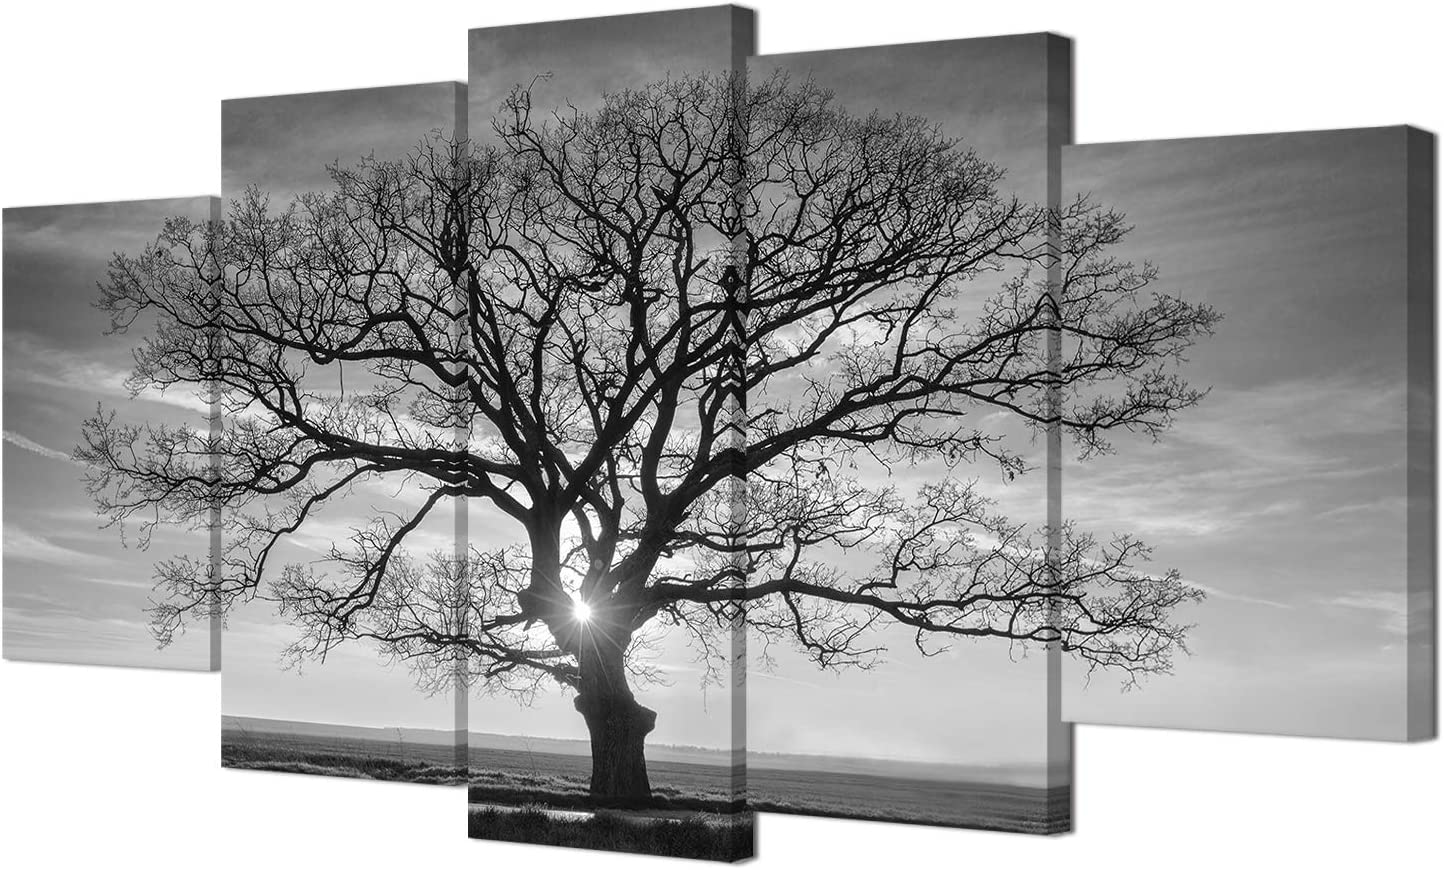 HOMEOART Tree Wall Art Canvas Prints Black and White Tree Picture Nature Landscape Canvas Prints Living Room Office Decor 5 Panels